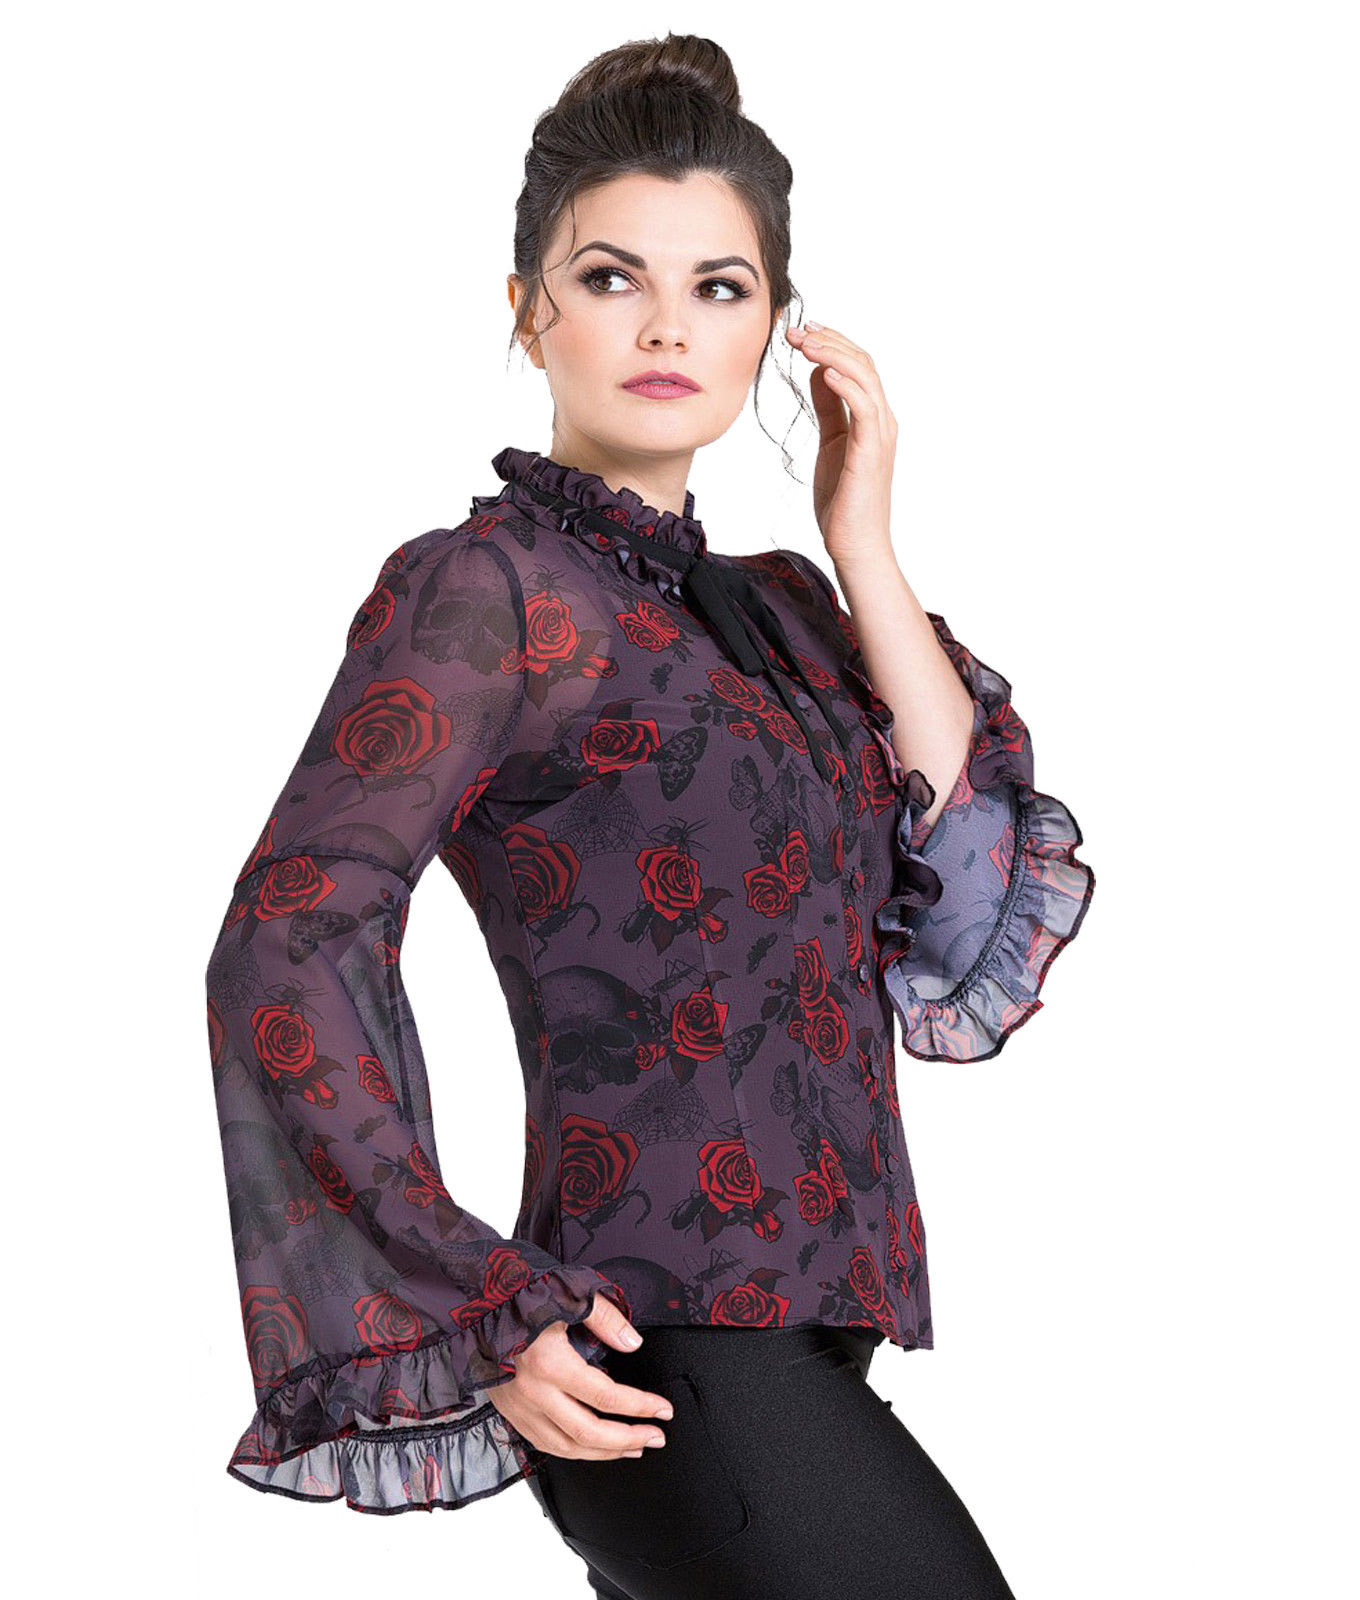 Hell-Bunny-Chiffon-Shirt-Top-Gothic-Floaty-BUGS-amp-ROSES-Purple-Blouse-All-Sizes thumbnail 15